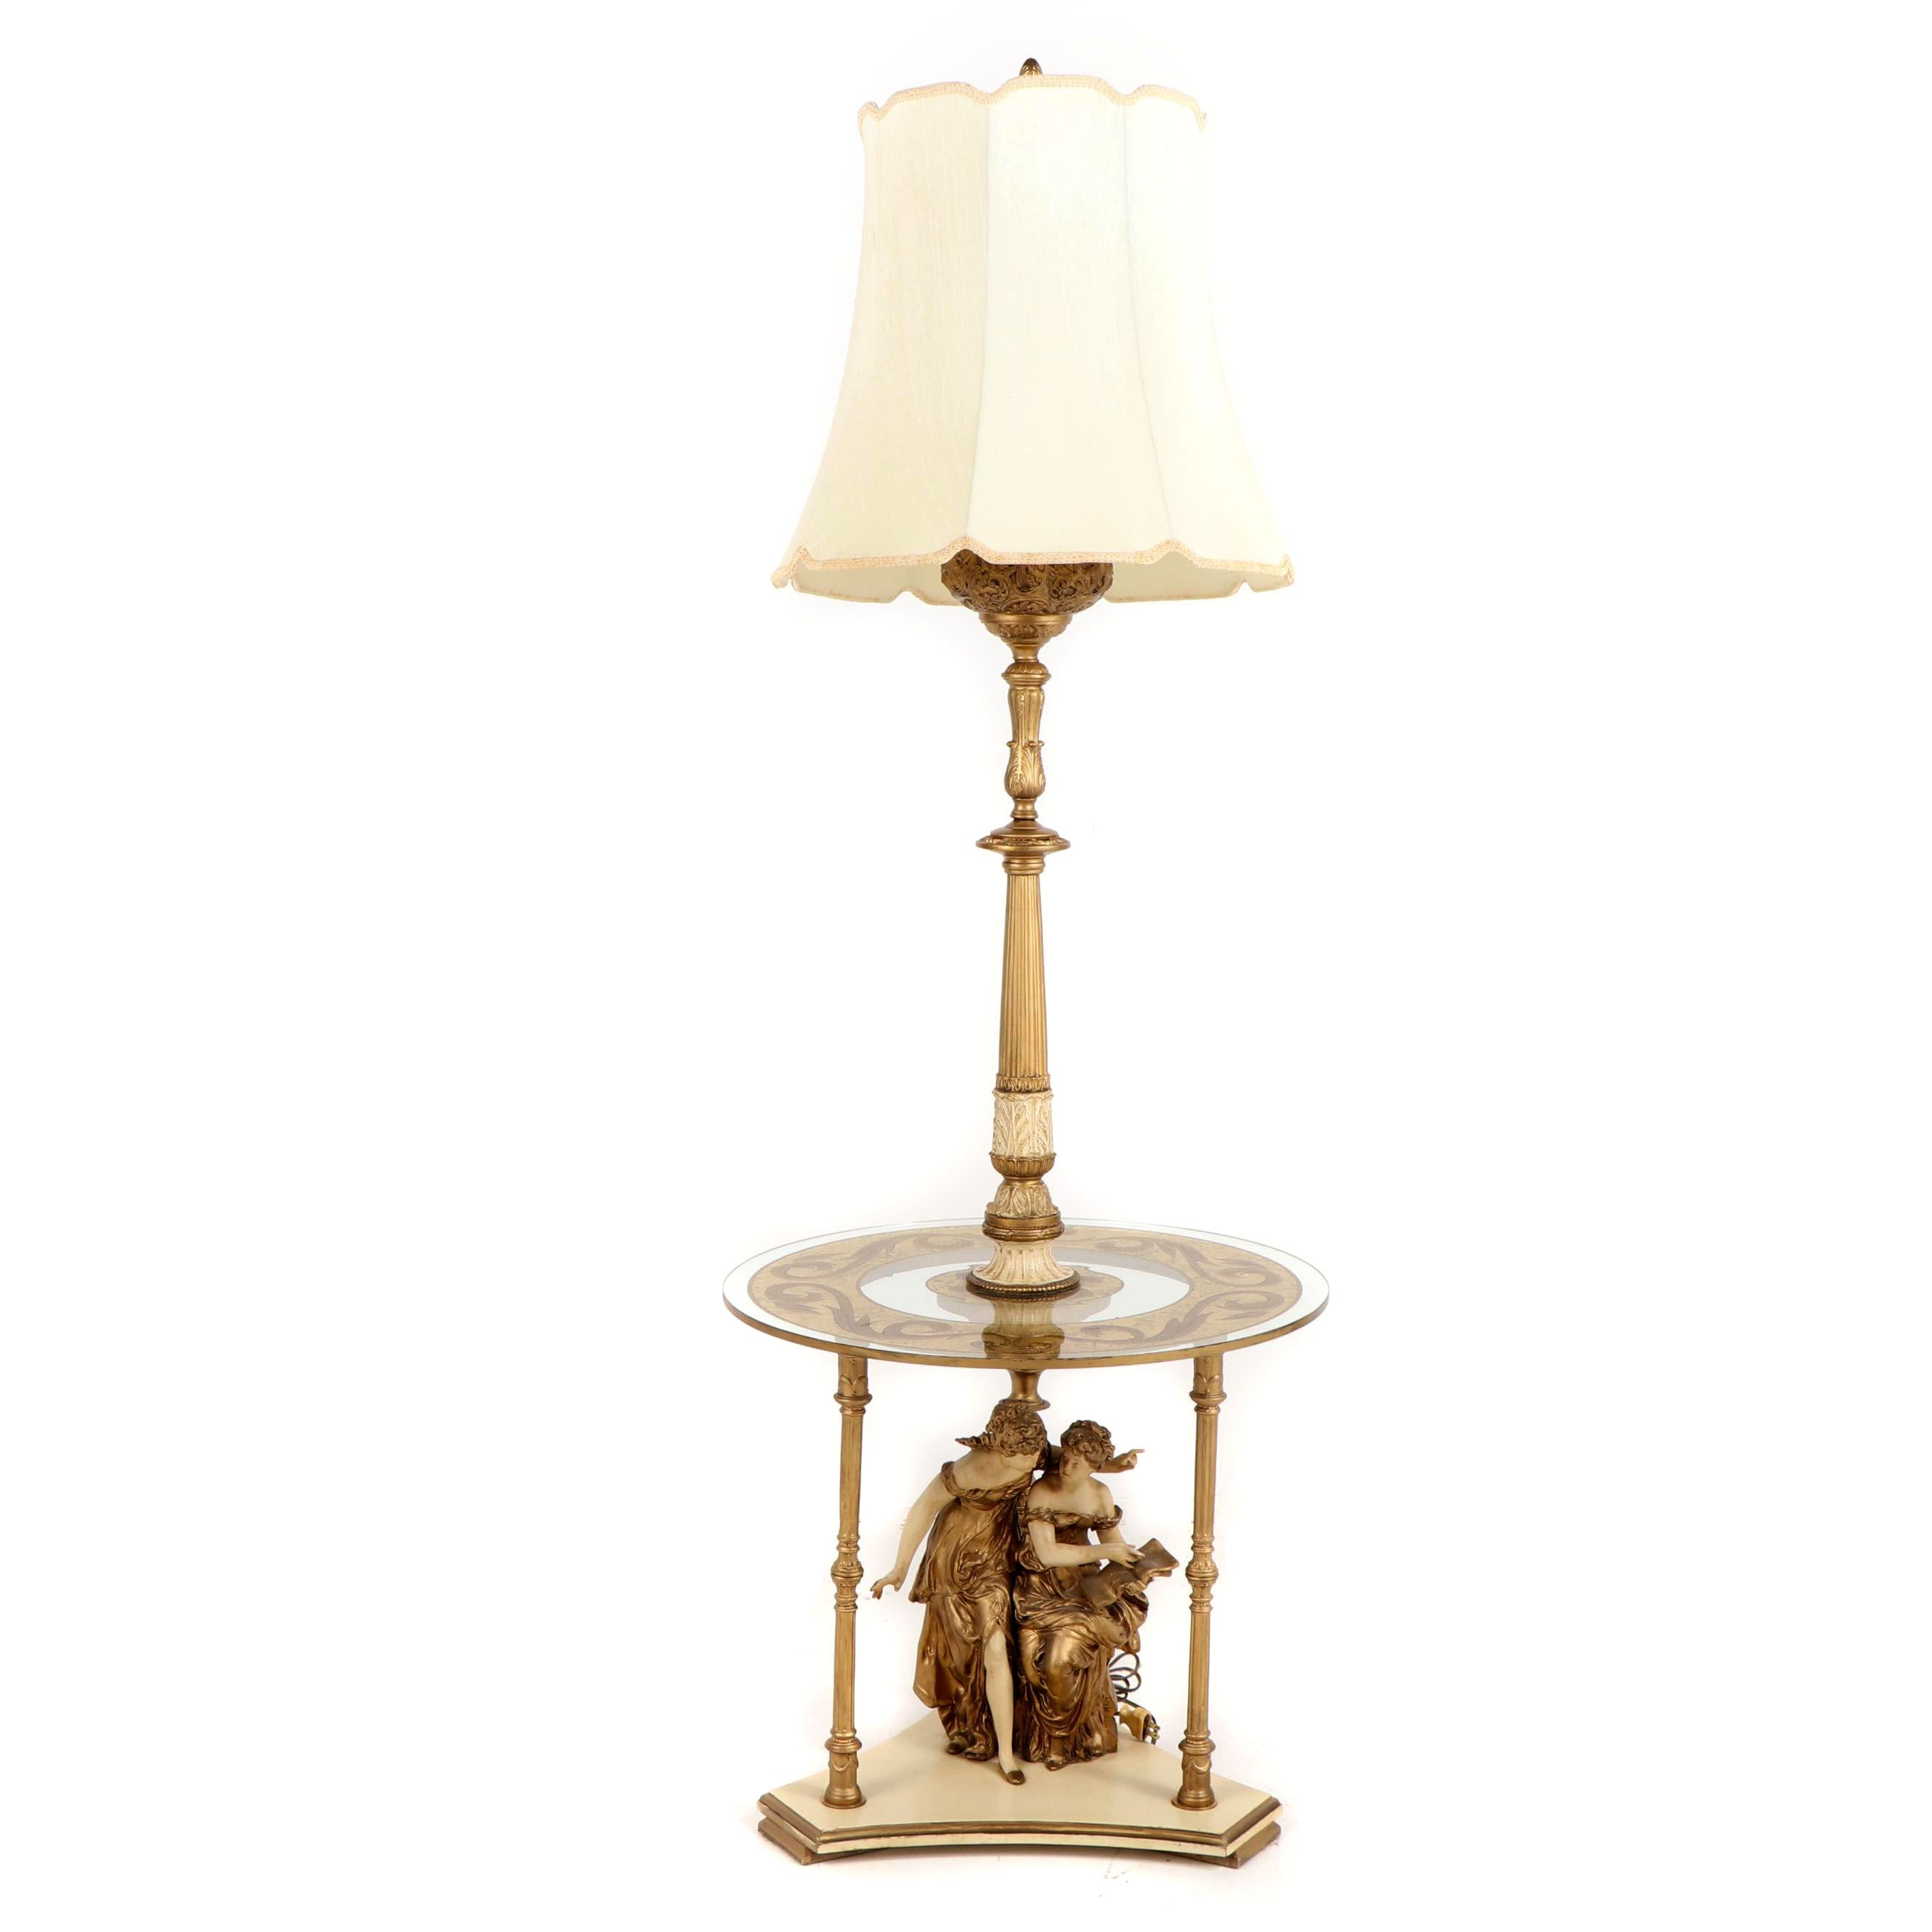 Baroque Style Gilt Metal and Glass Side Table Floor Lamp with Shade